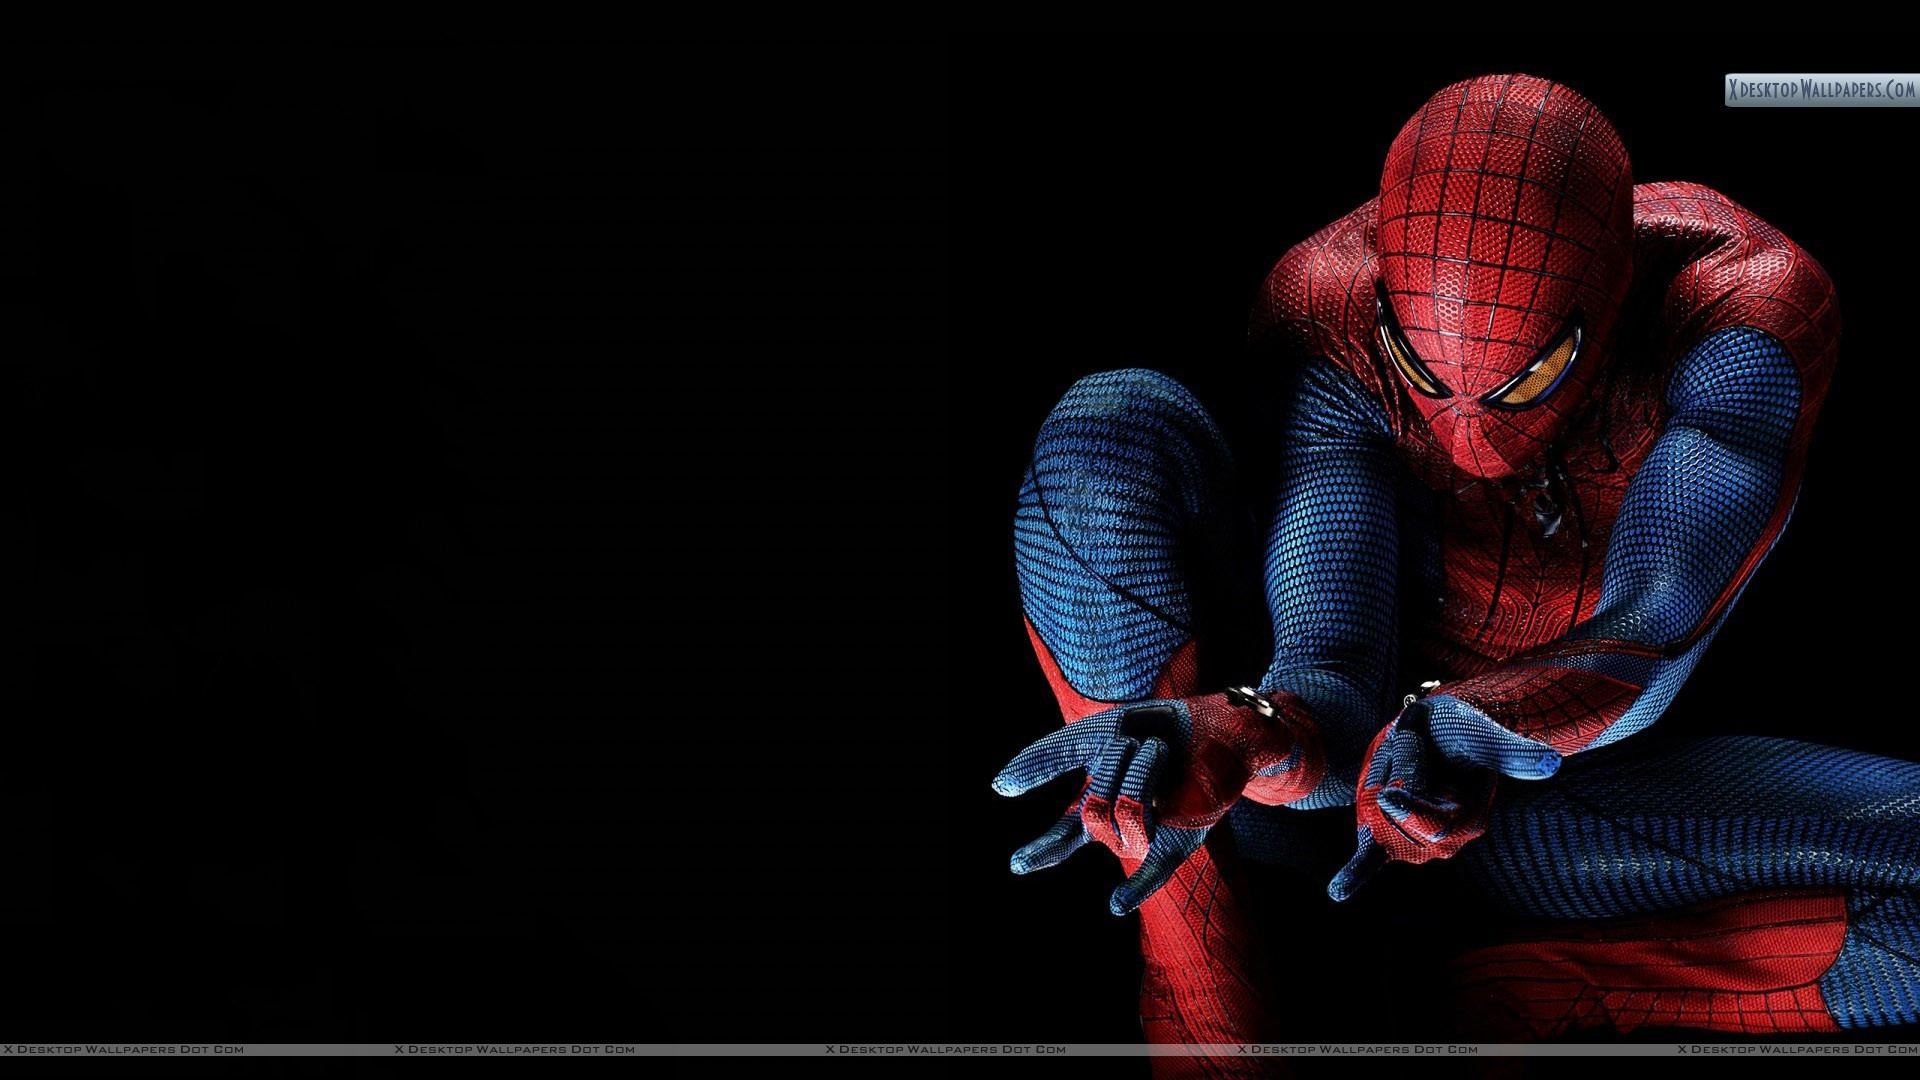 The Superior Spiderman HD Wallpapers Backgrounds Wallpaper 1920×1200  Spiderman Pics | Adorable Wallpapers | Wallpapers | Pinterest | Spiderman  pics, …